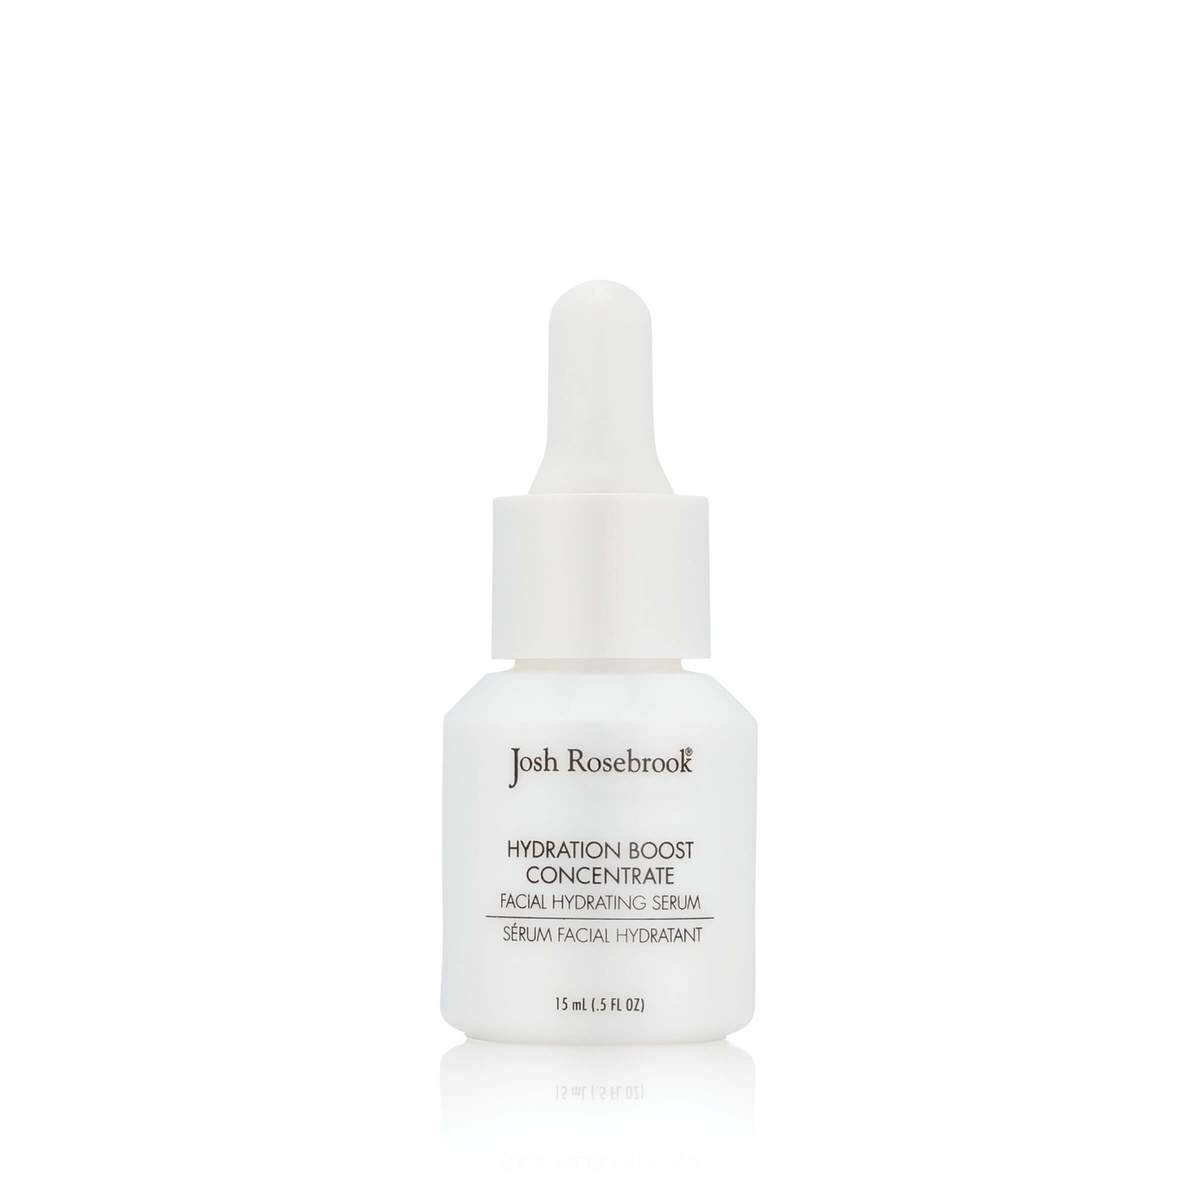 Josh Rosebrook - Hydration Boost Concentrate